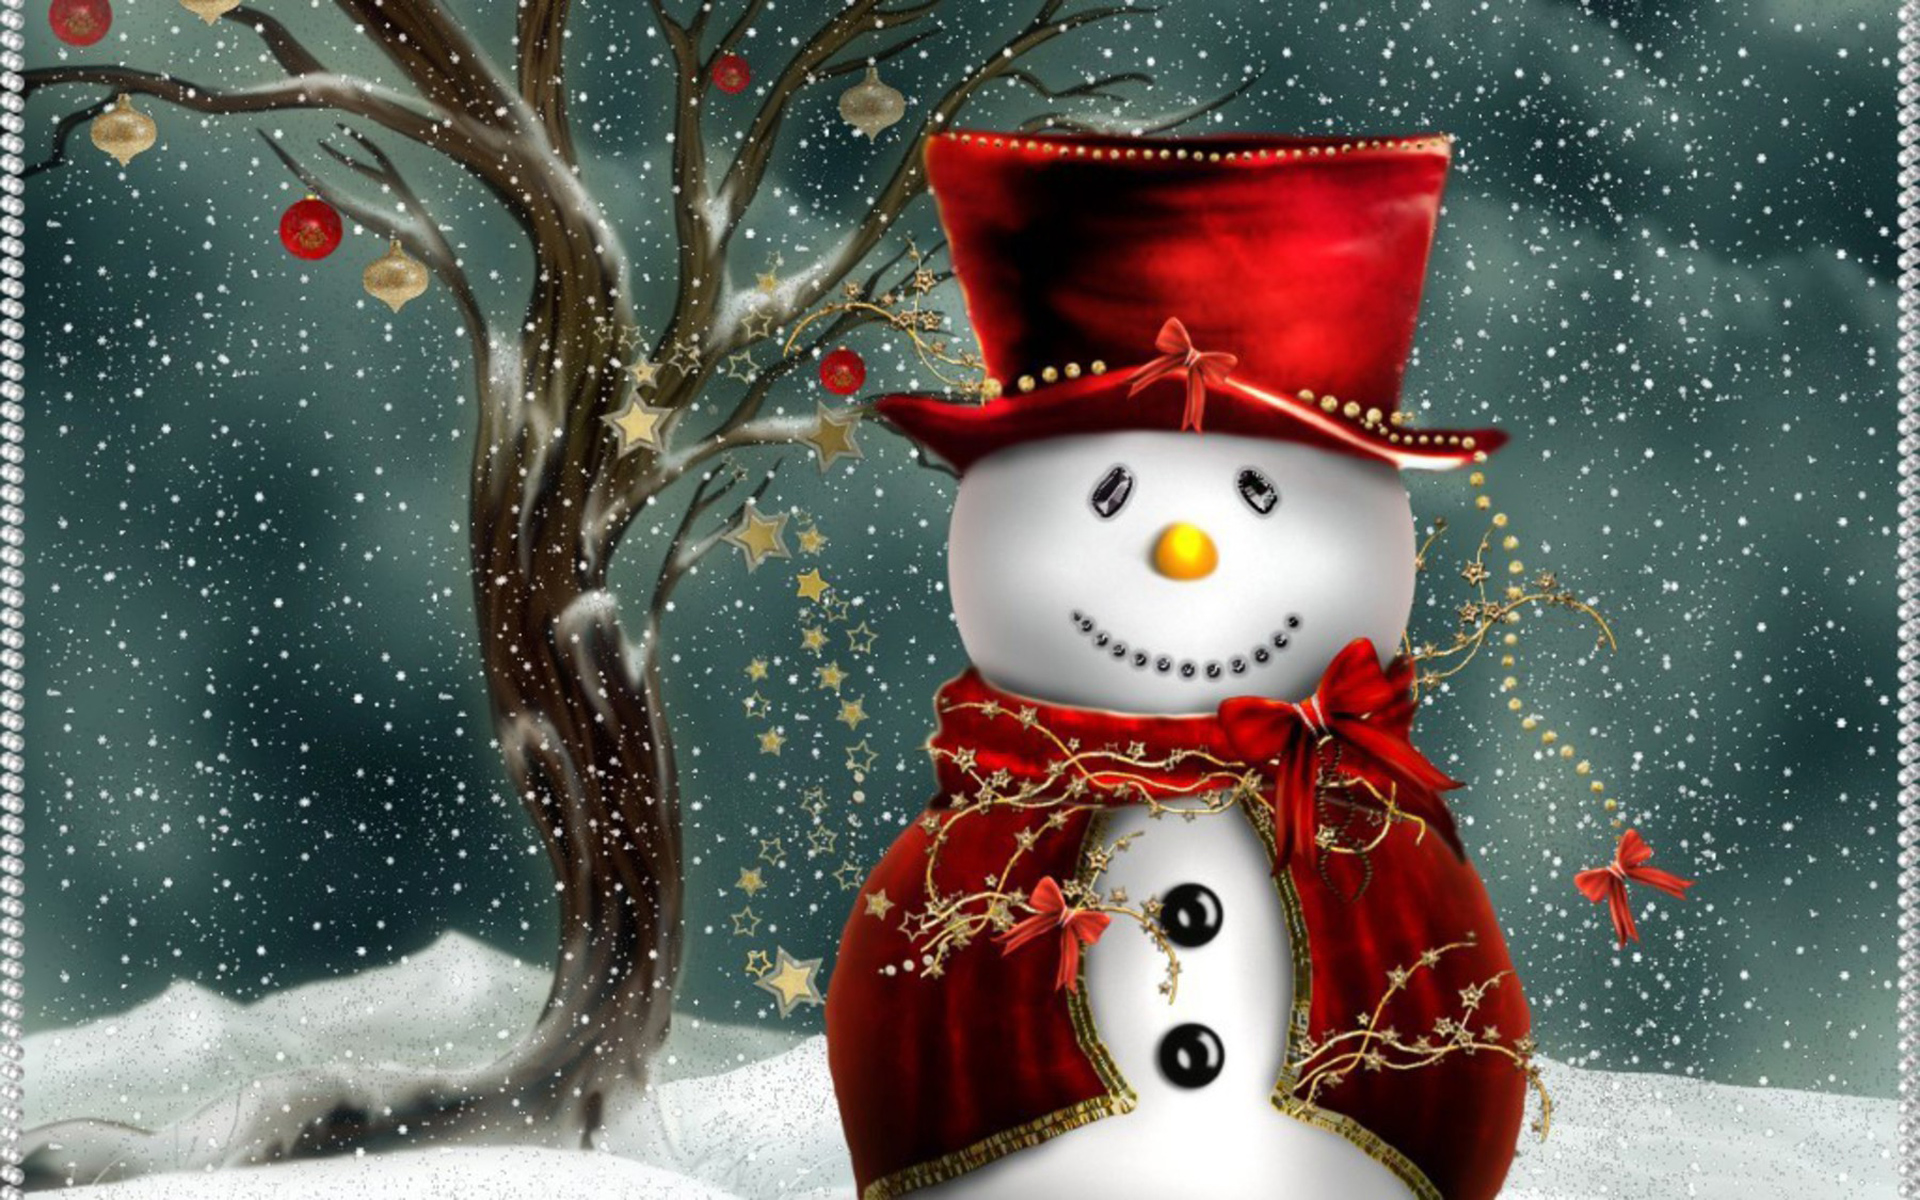 Cute Christmas Pictures Wallpaper images Pics Backgrounds Photos 1920x1200